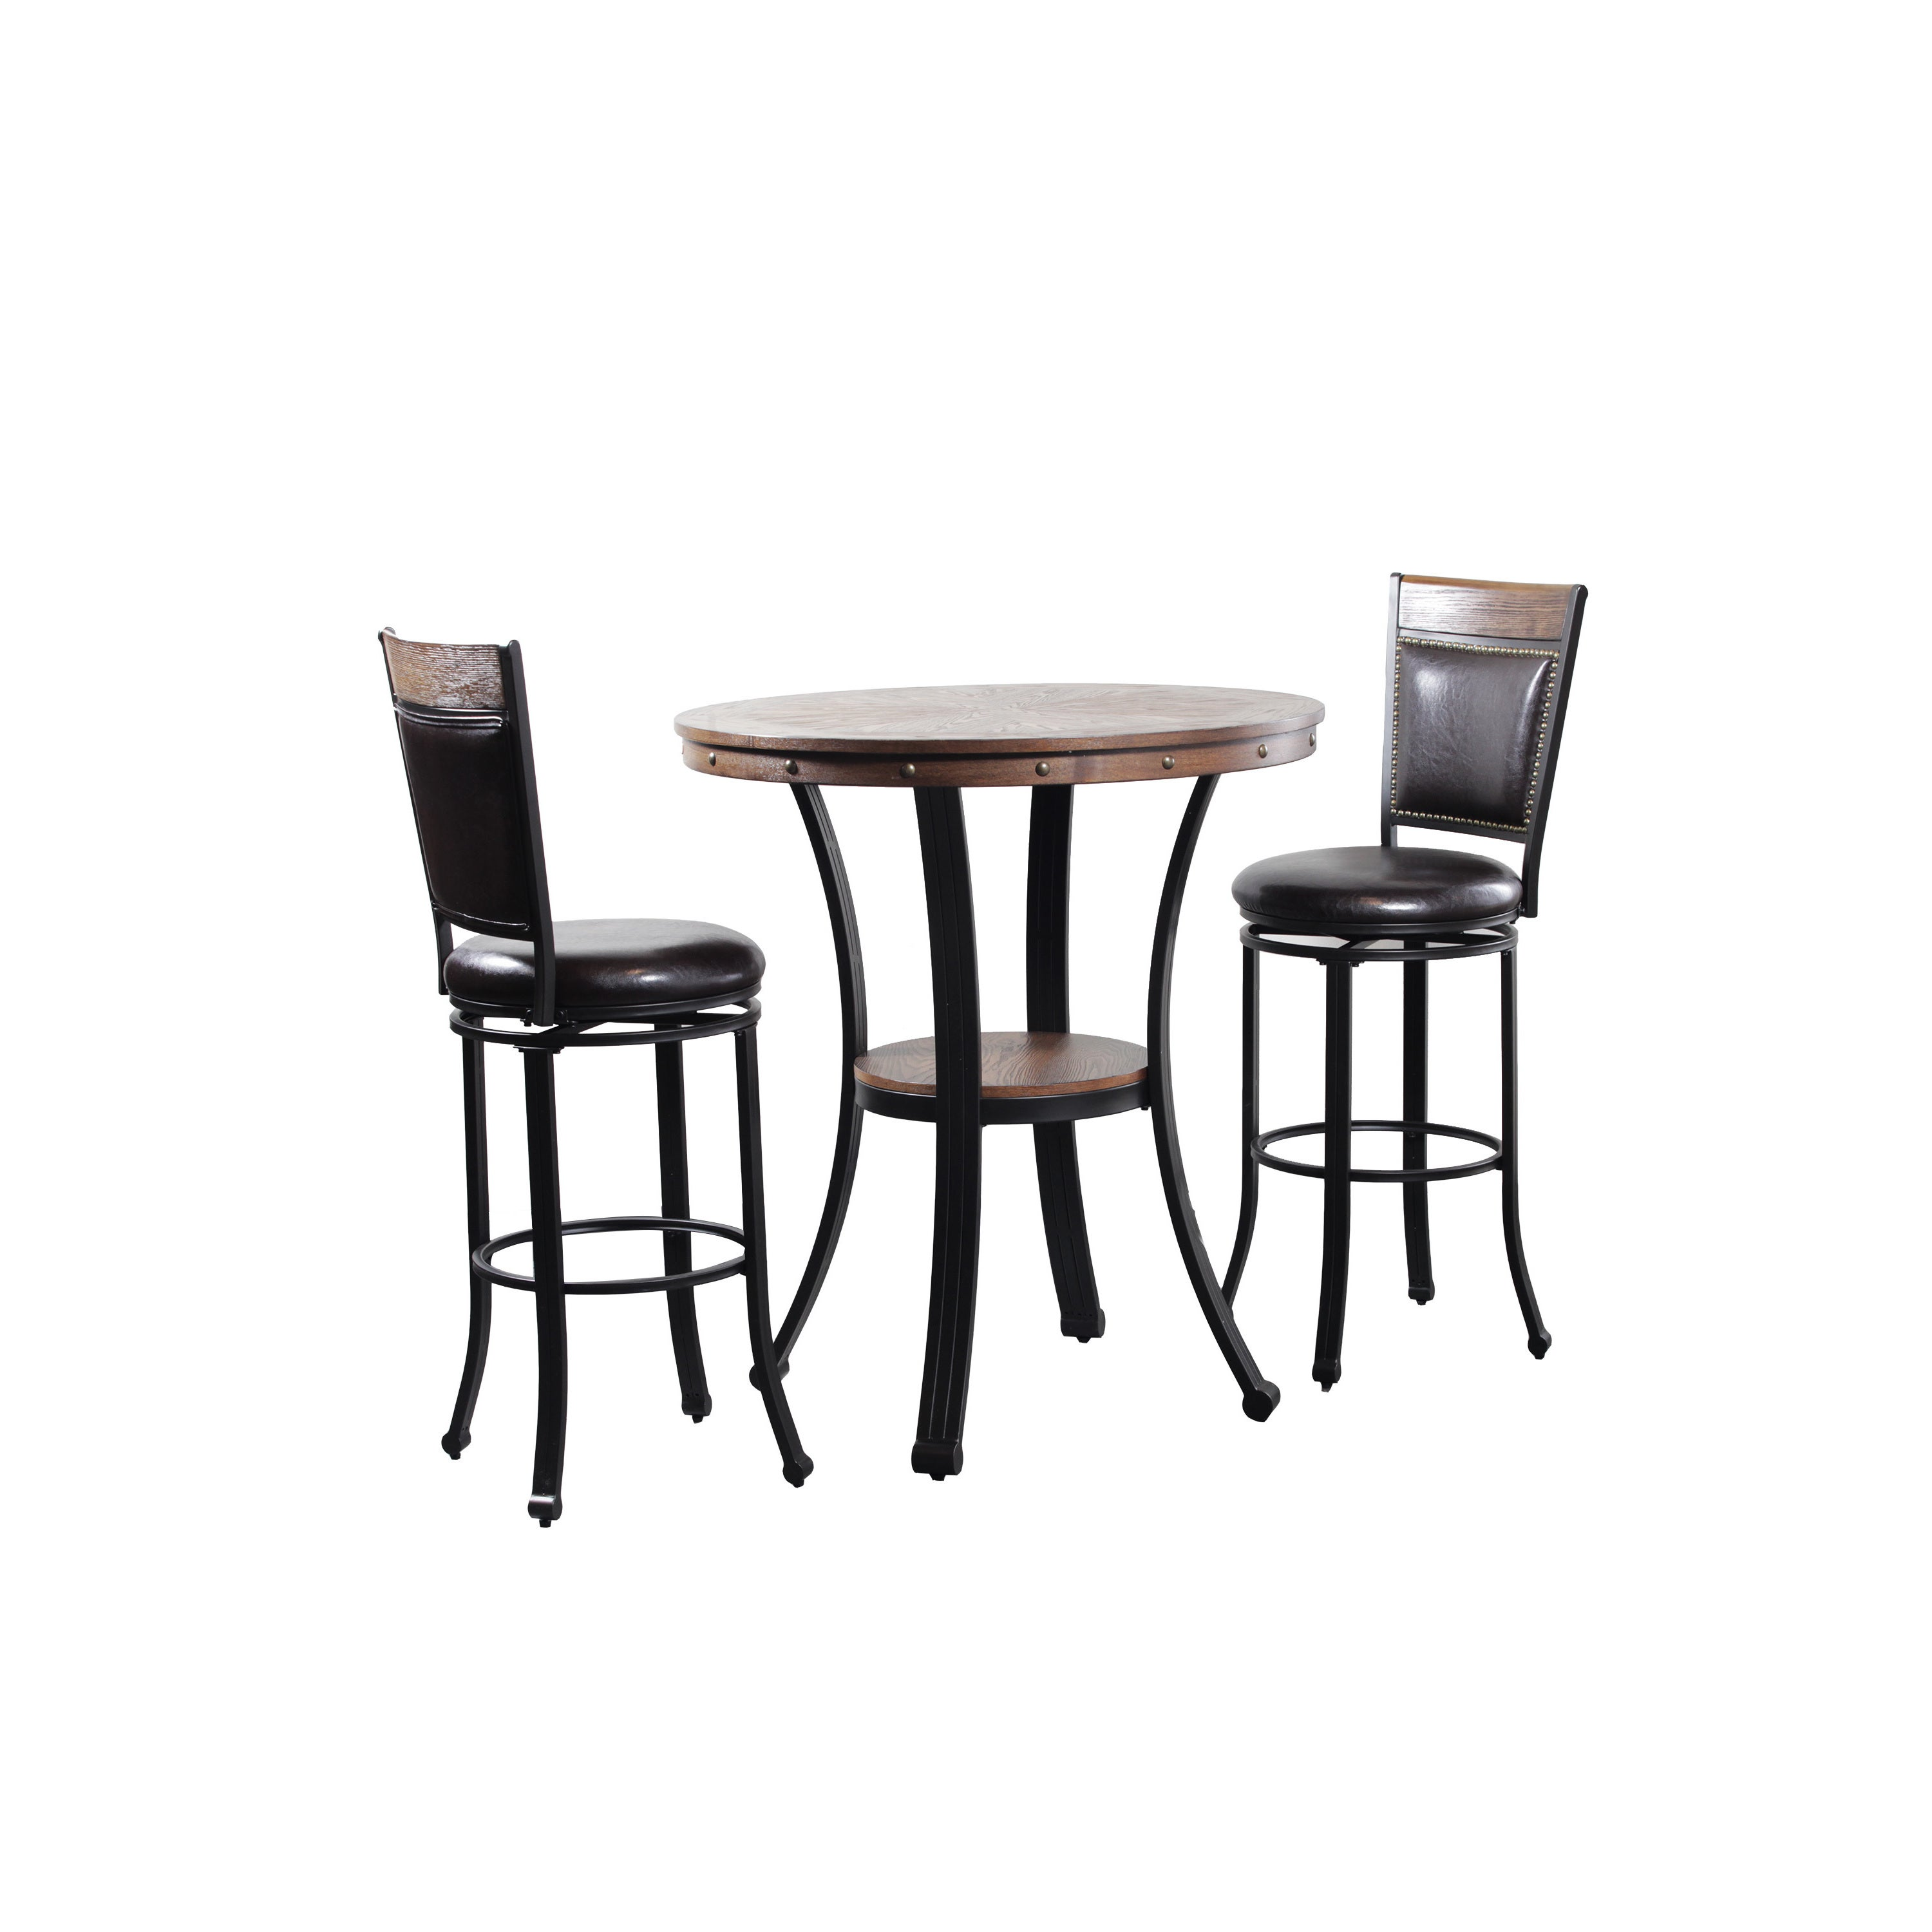 Franklin Pub Table And 2 Bar Stools Set Free Shipping Today 13840598